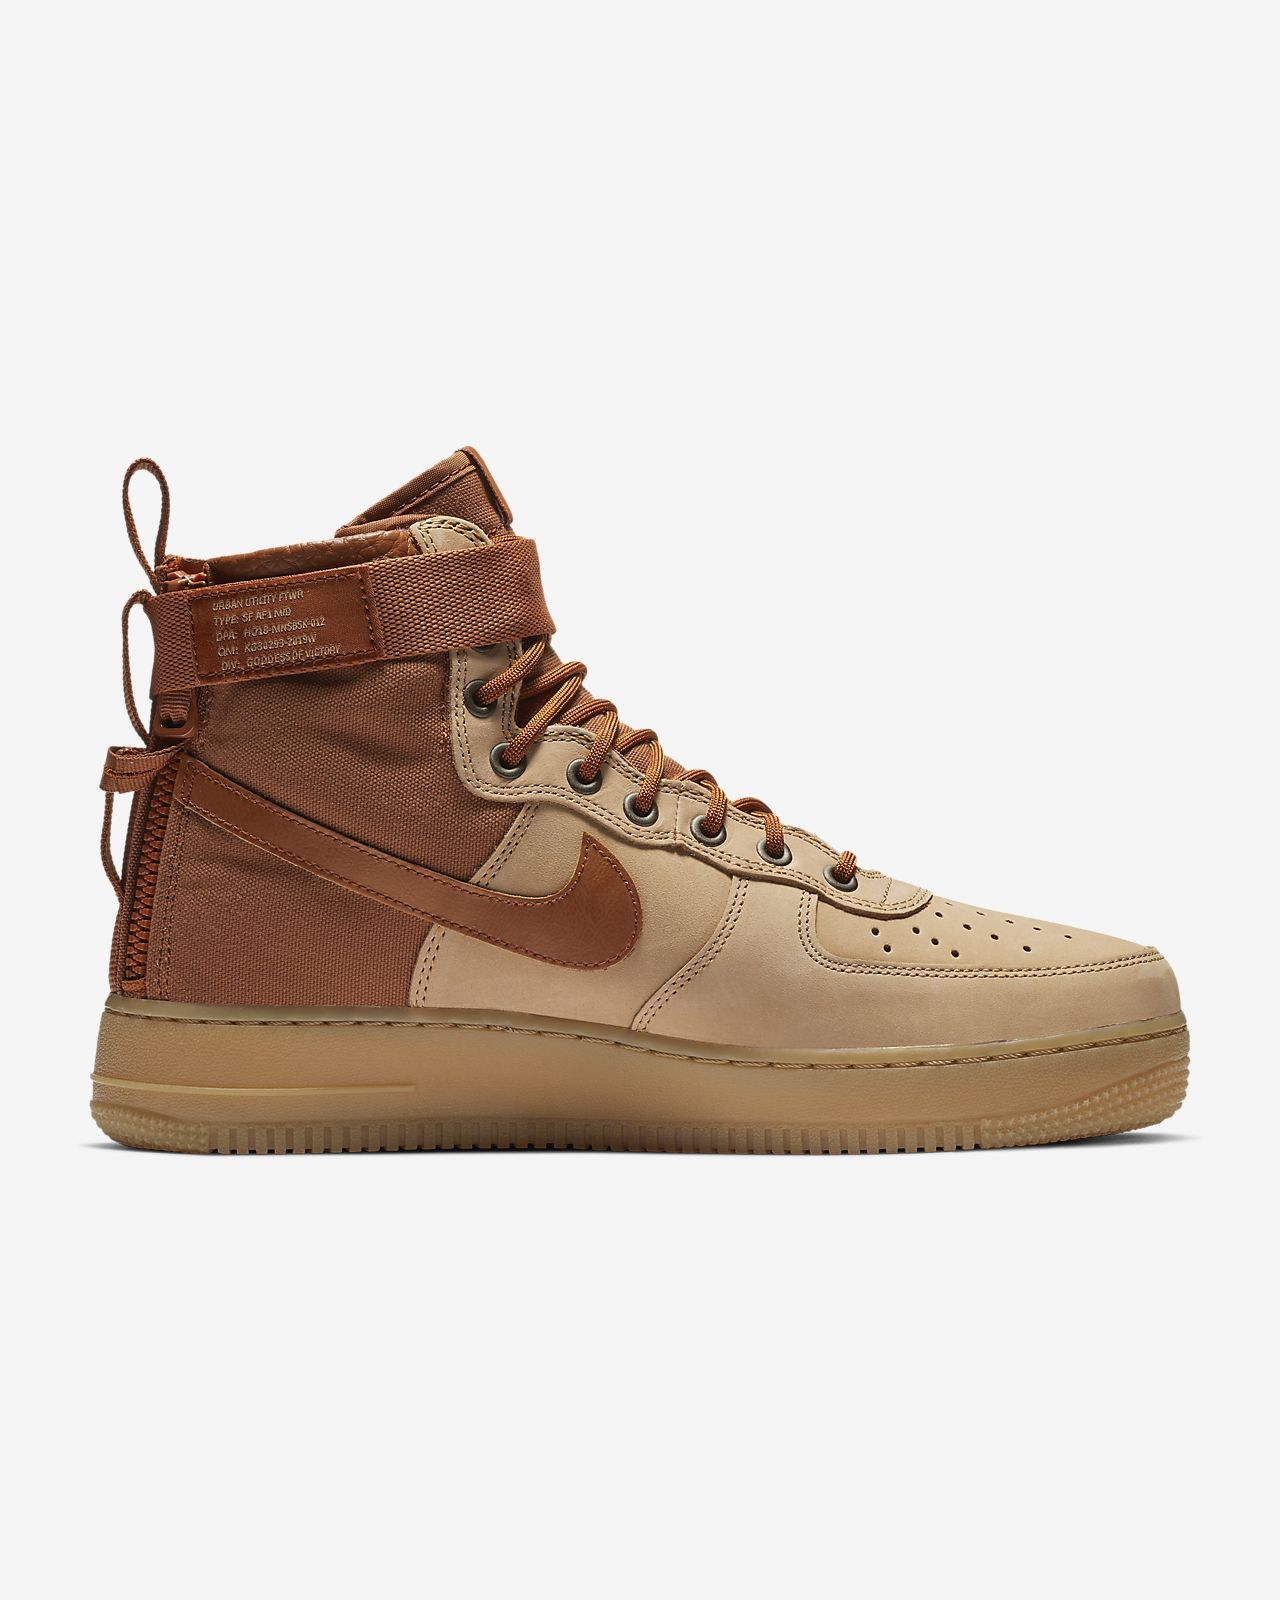 Shoe Nike Air Men's Sf 1 Mid Premium Force bmfgyIY6v7